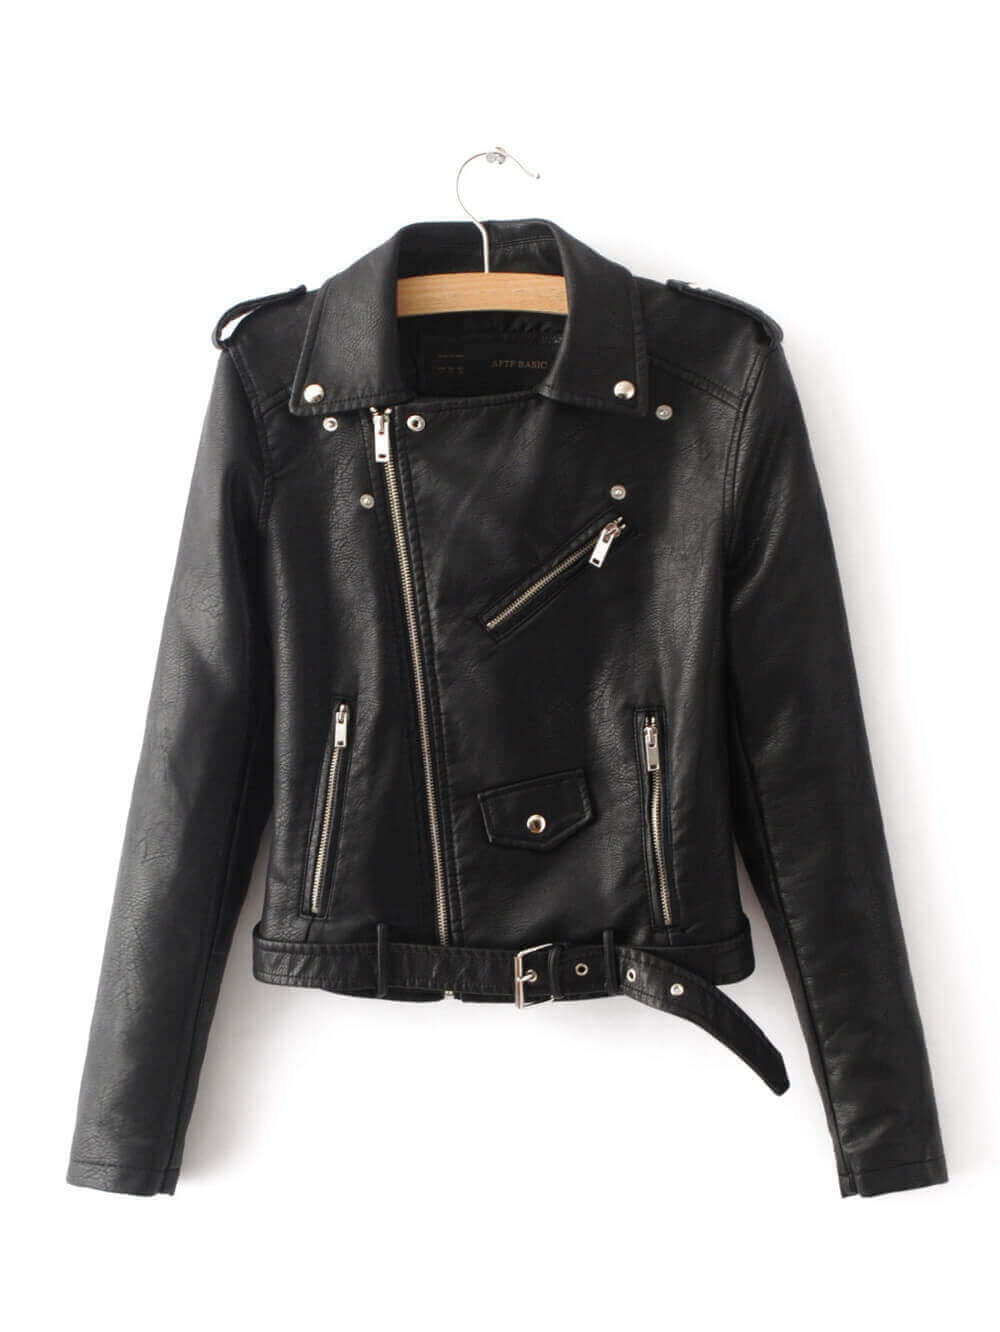 FLASH SALE (5 HOUR SALE) -That Chic Rocks Vegan Leather Jackets, All Colors & Sizes